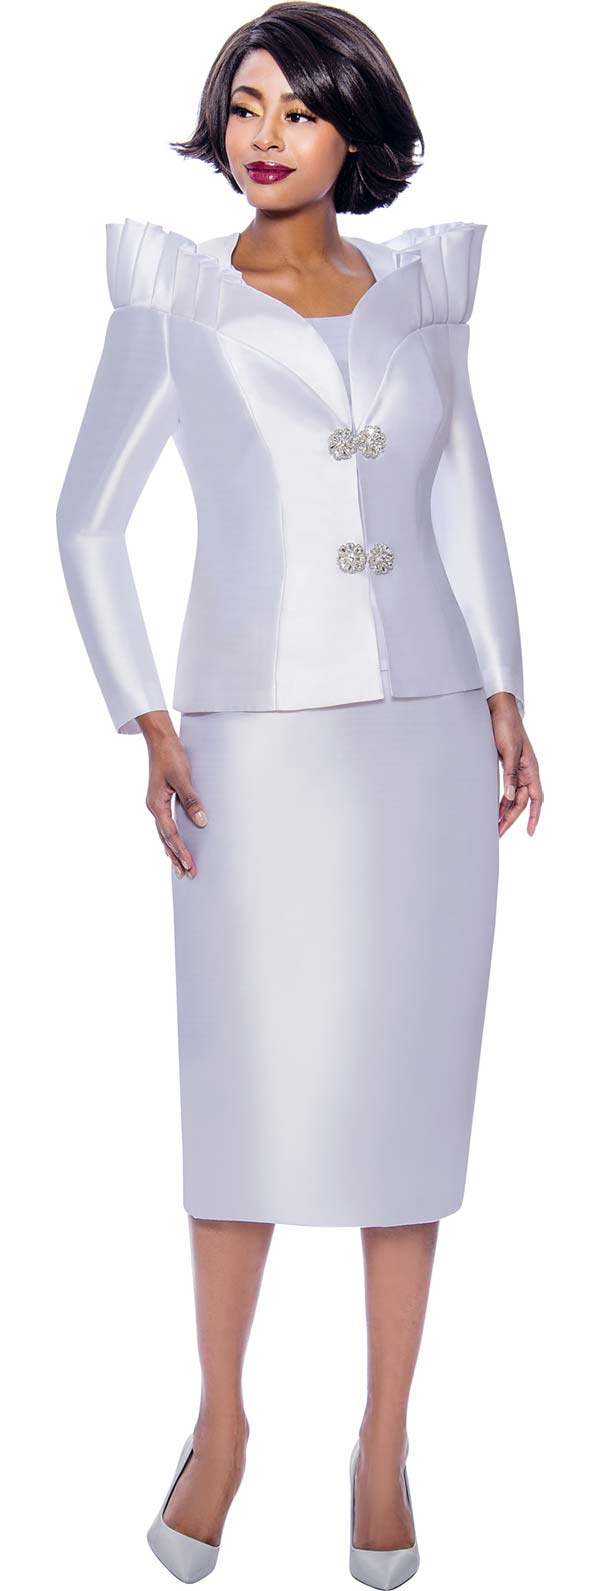 Terramina 7811-White - Womens Church Suit Featuring Pleated Stand-Up Over Shoulder Collar